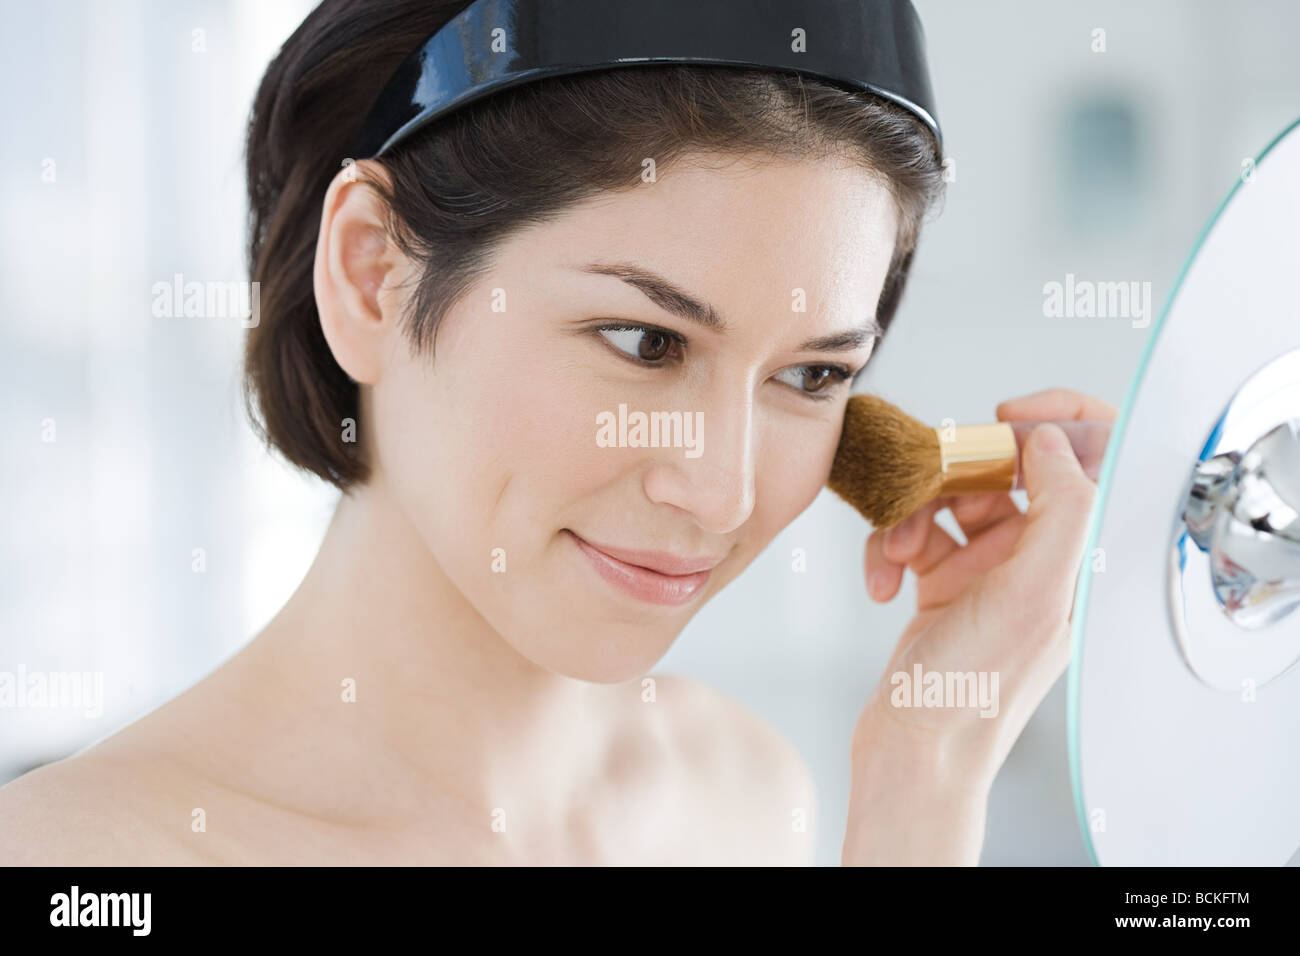 Young woman applying make up Stock Photo